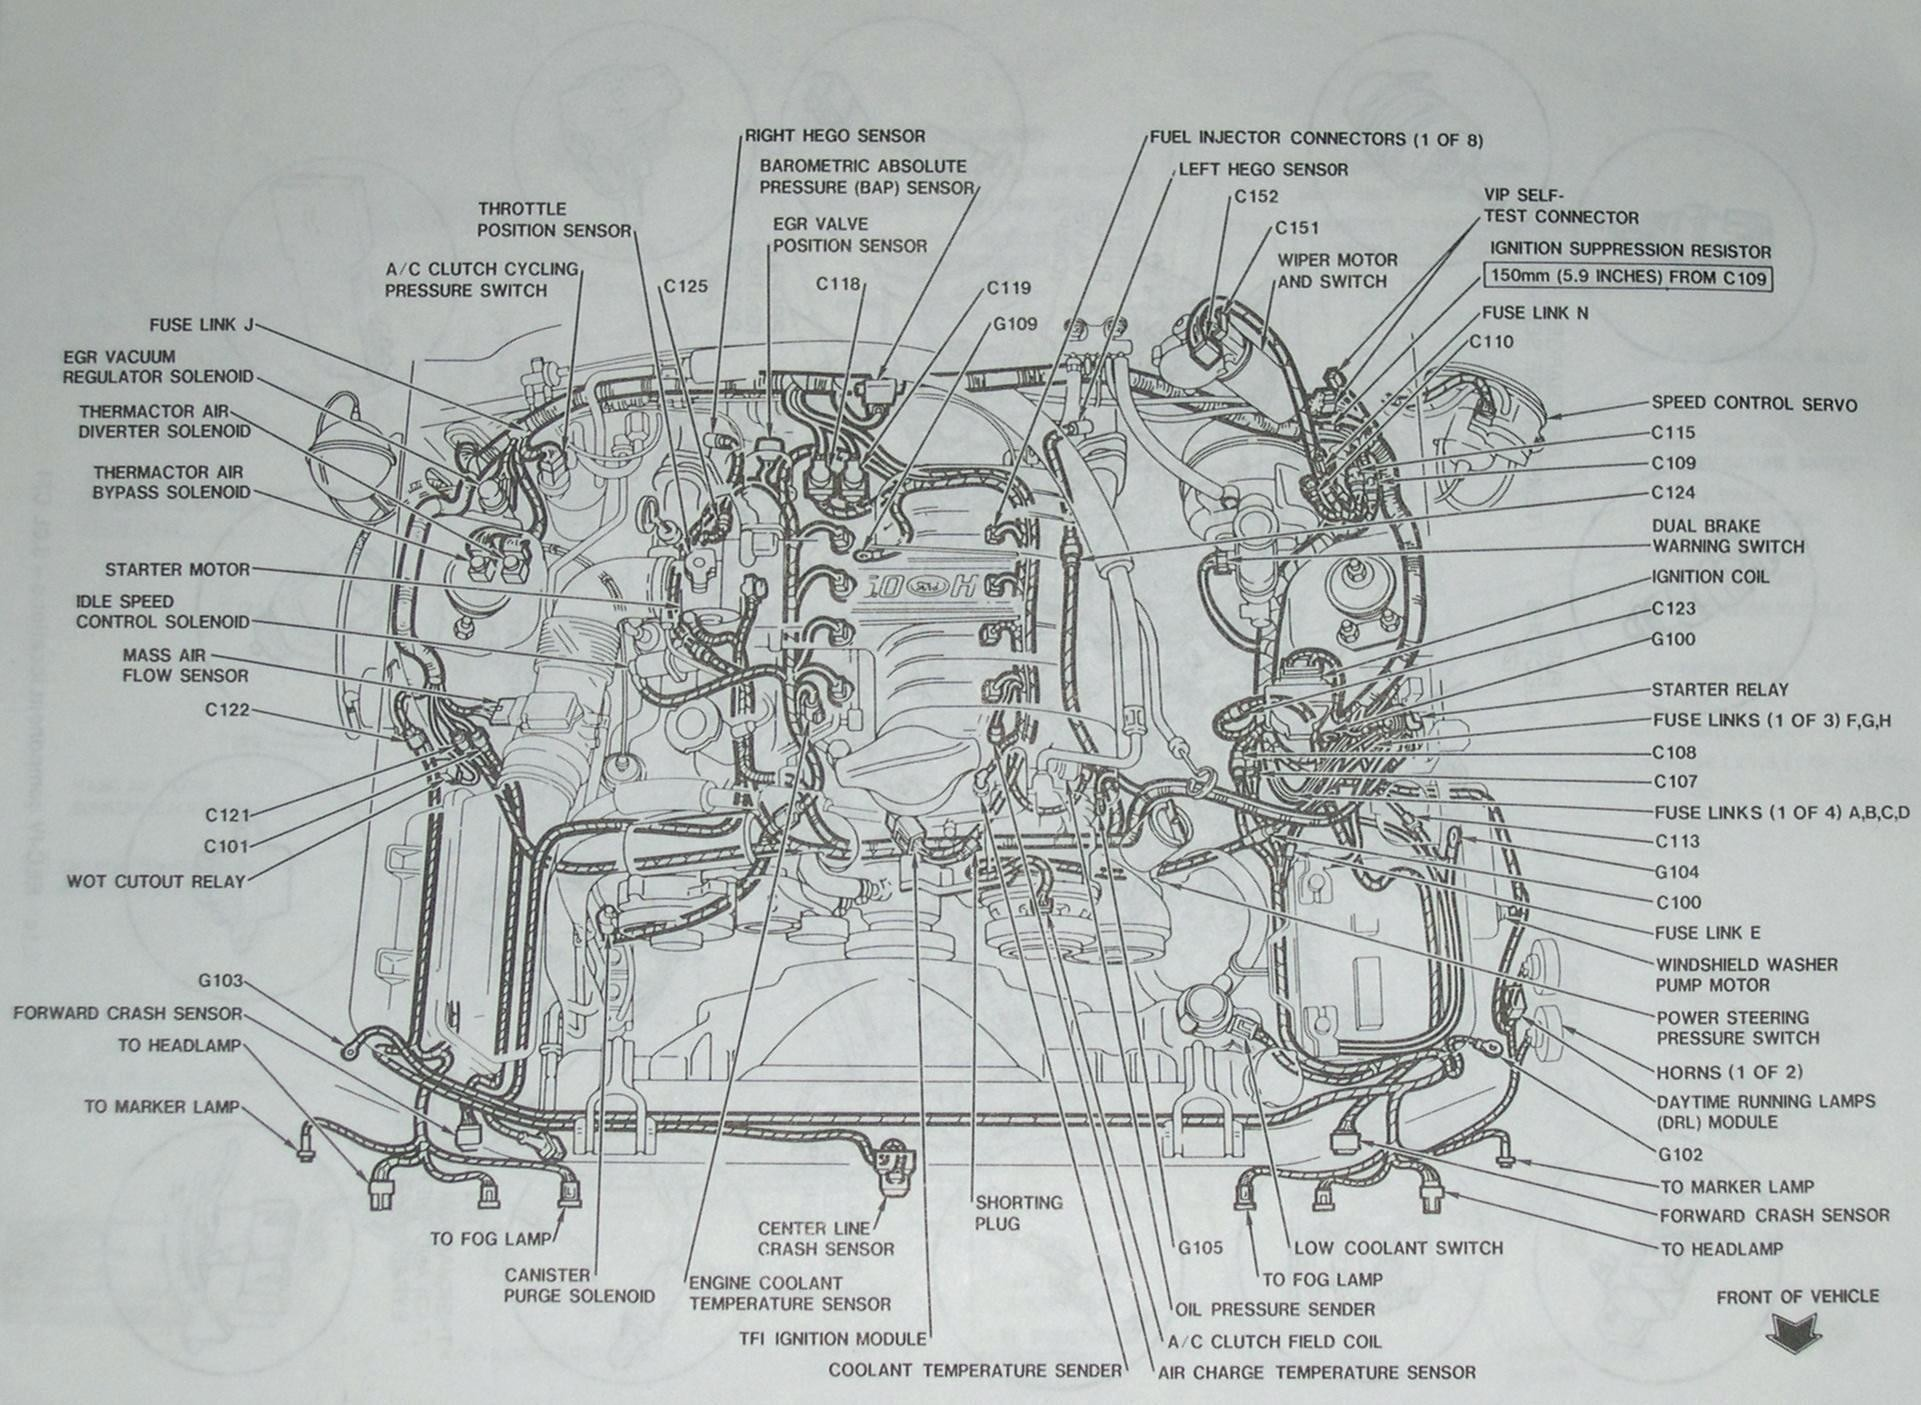 ford ka engine diagram 94 mustang gt wiring diagram detailed engine layout 1994 fuse of ford ka engine diagram 89 mustang engine harness experts of wiring diagram \u2022